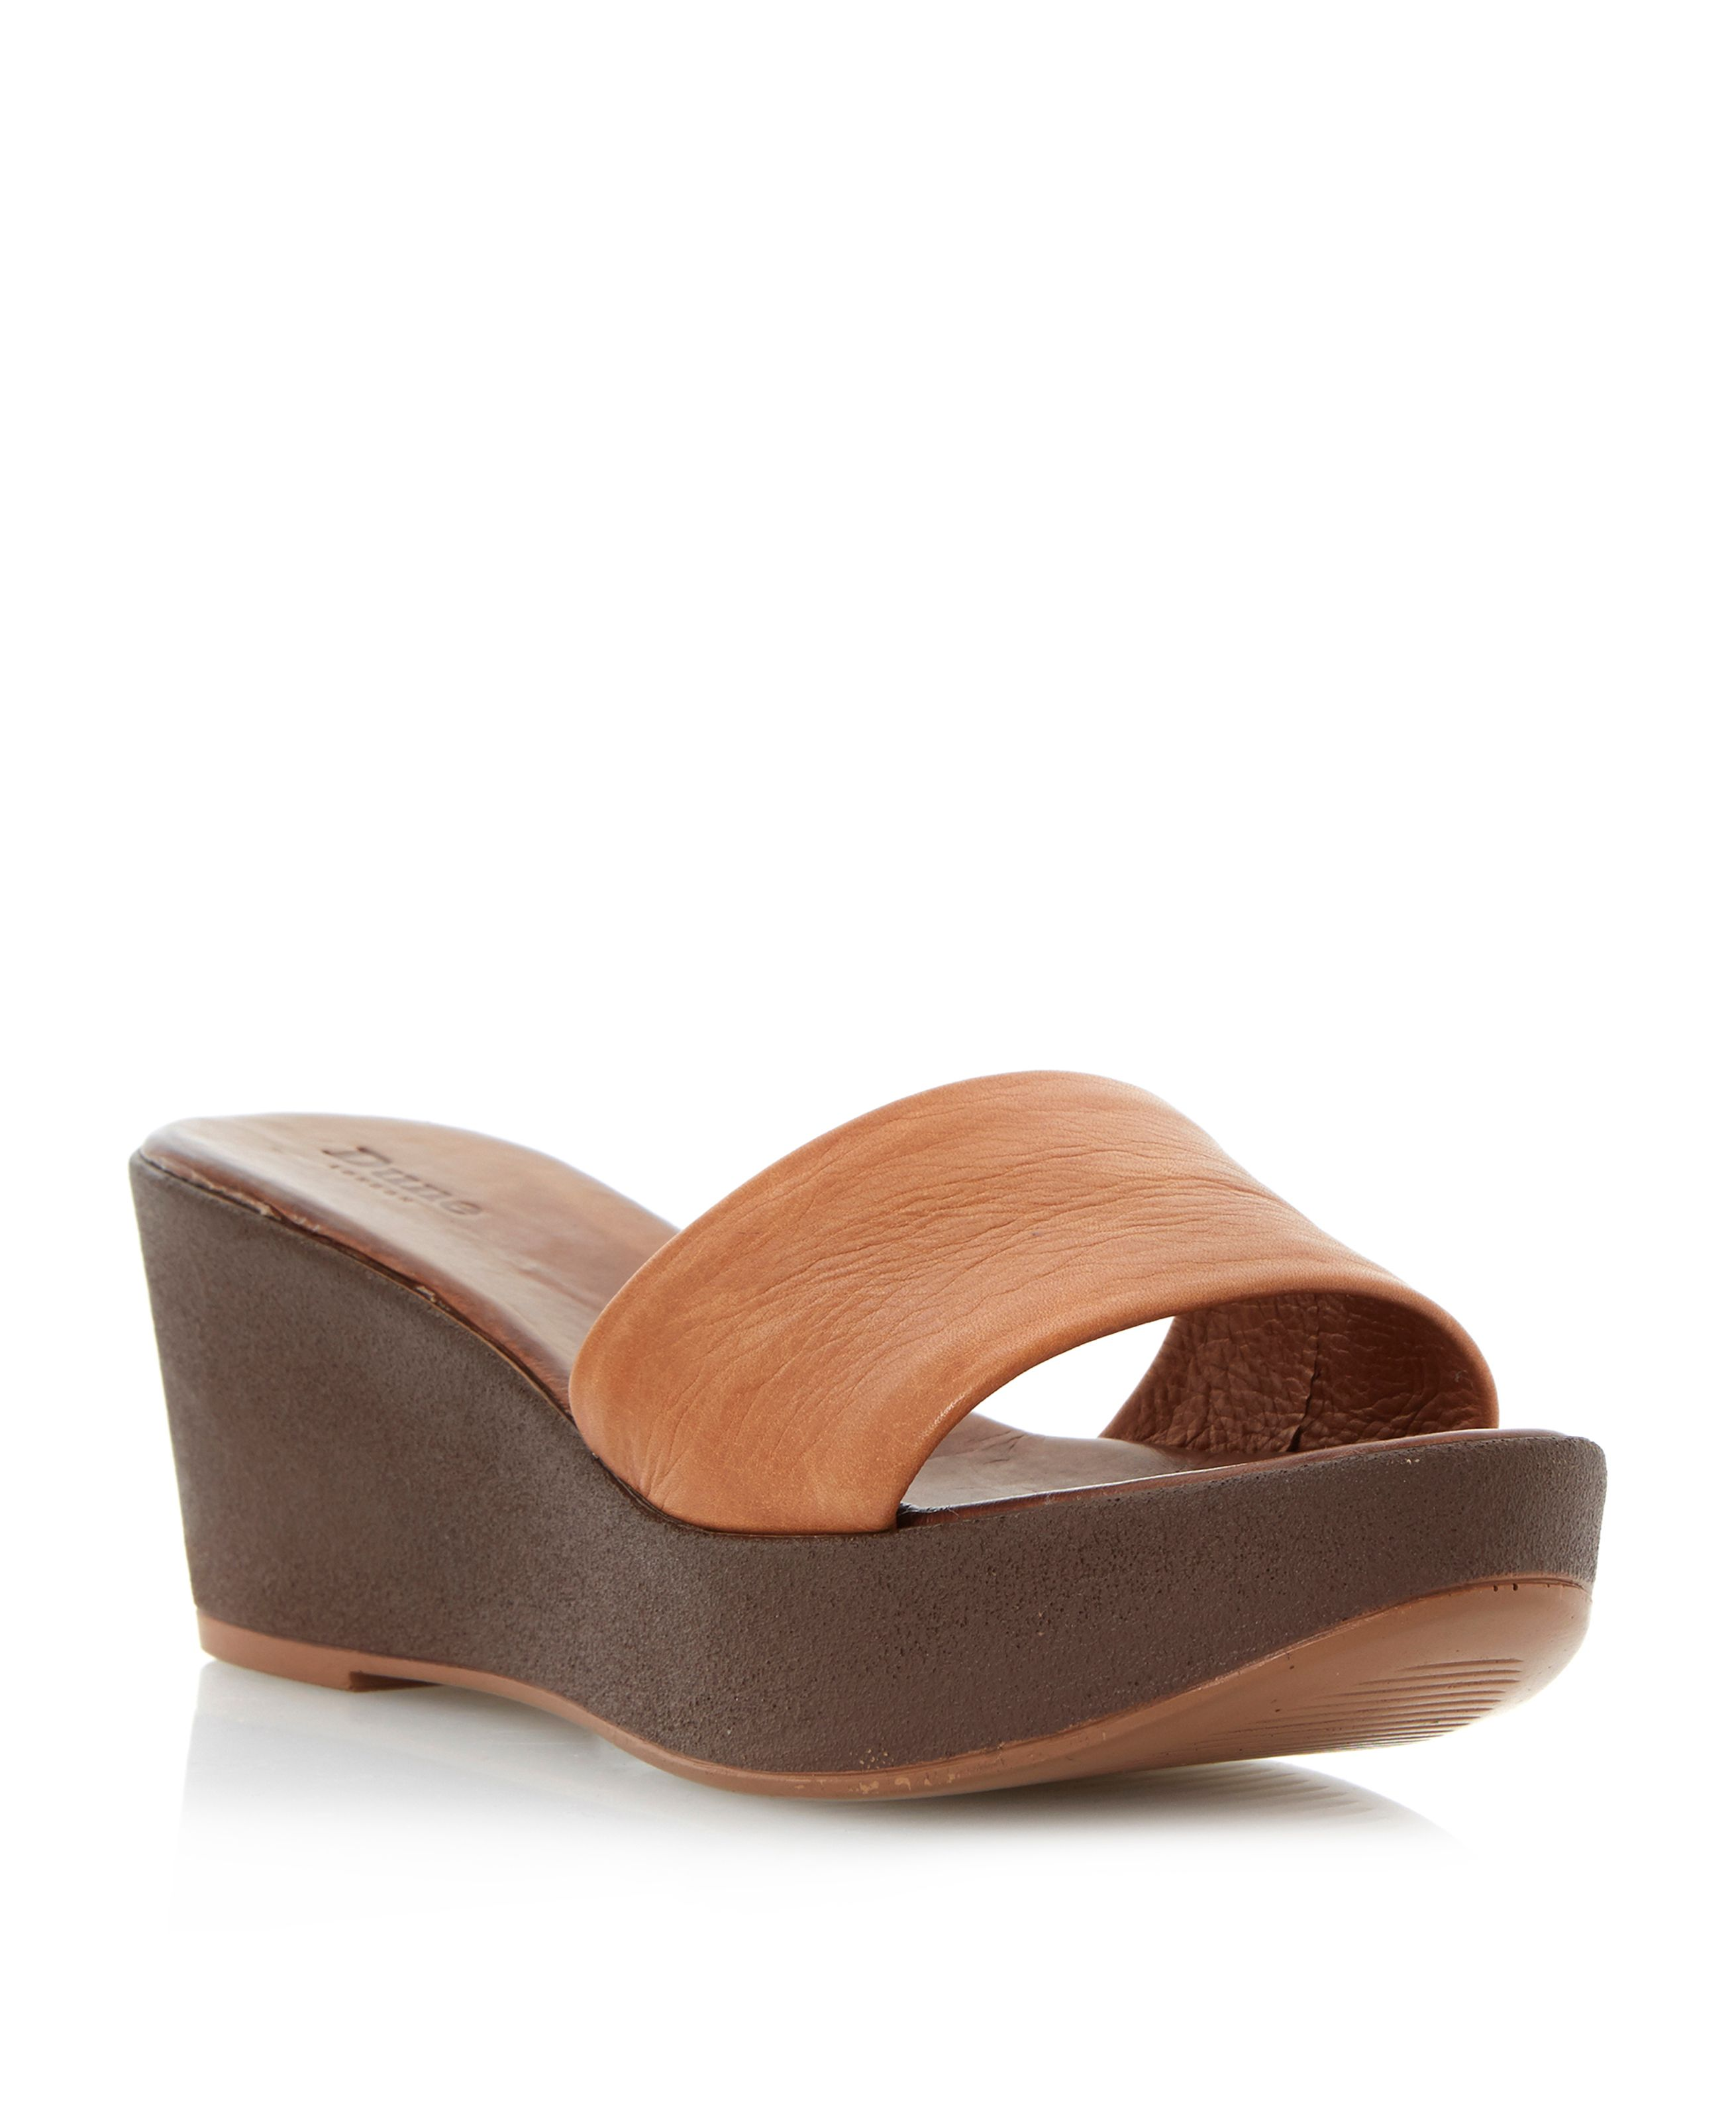 Gretta leather wedge sandals